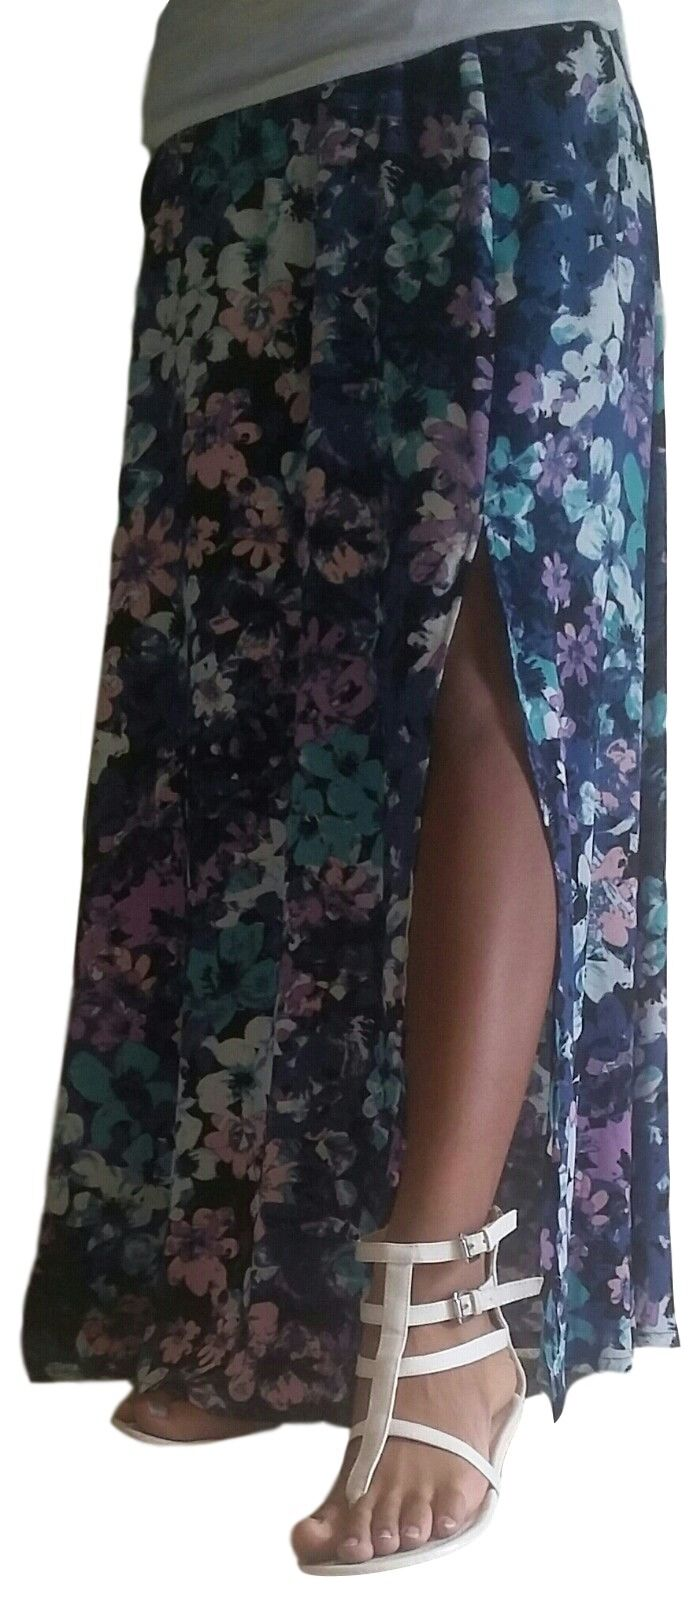 NEW Neiman Marcus Side Slit Maxi Skirt Womens Size S - Navy Floral A557